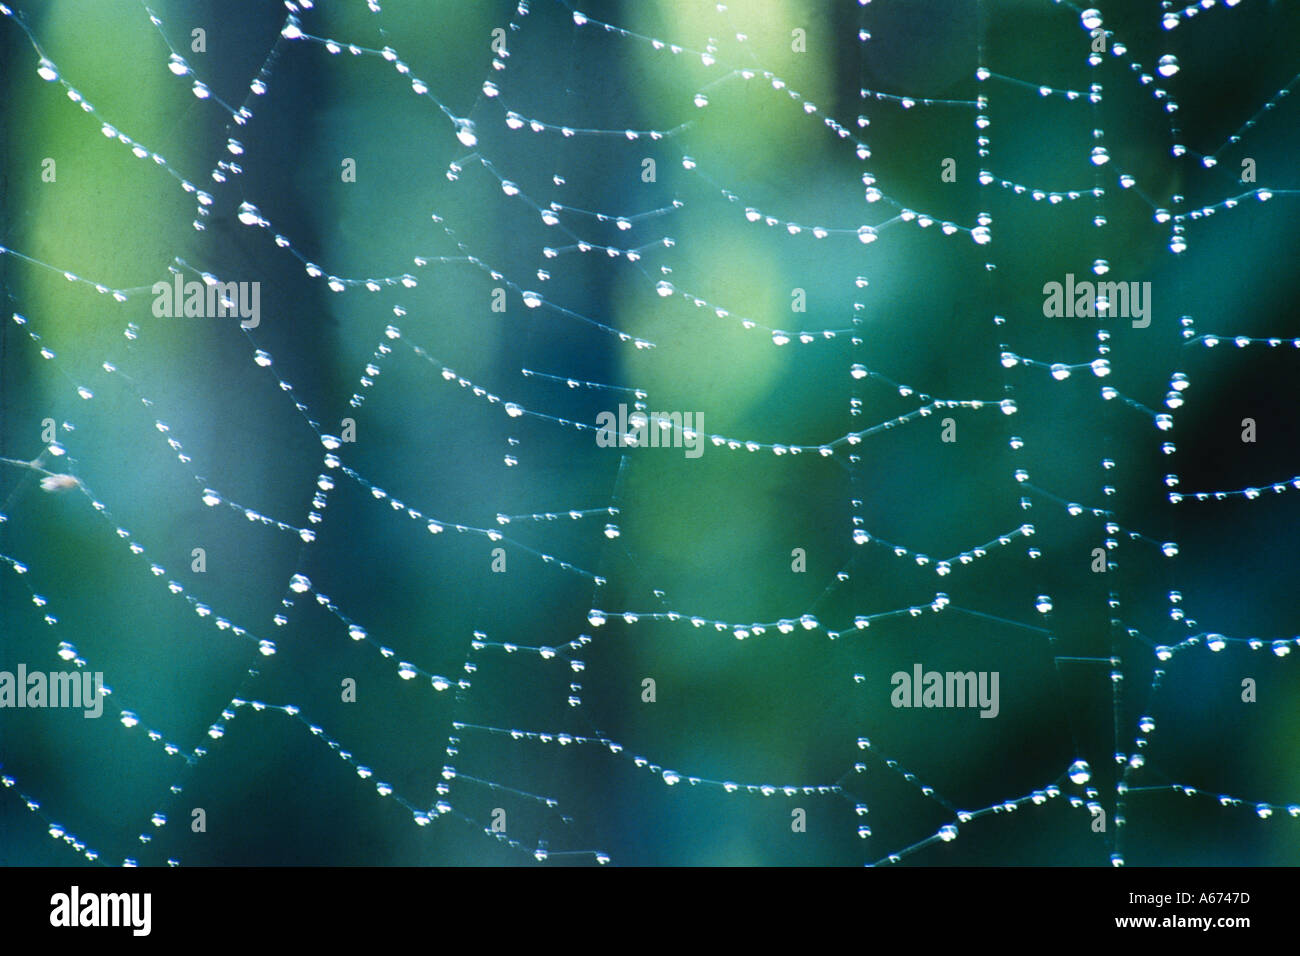 Spider web with dew drops sparkle - Stock Image